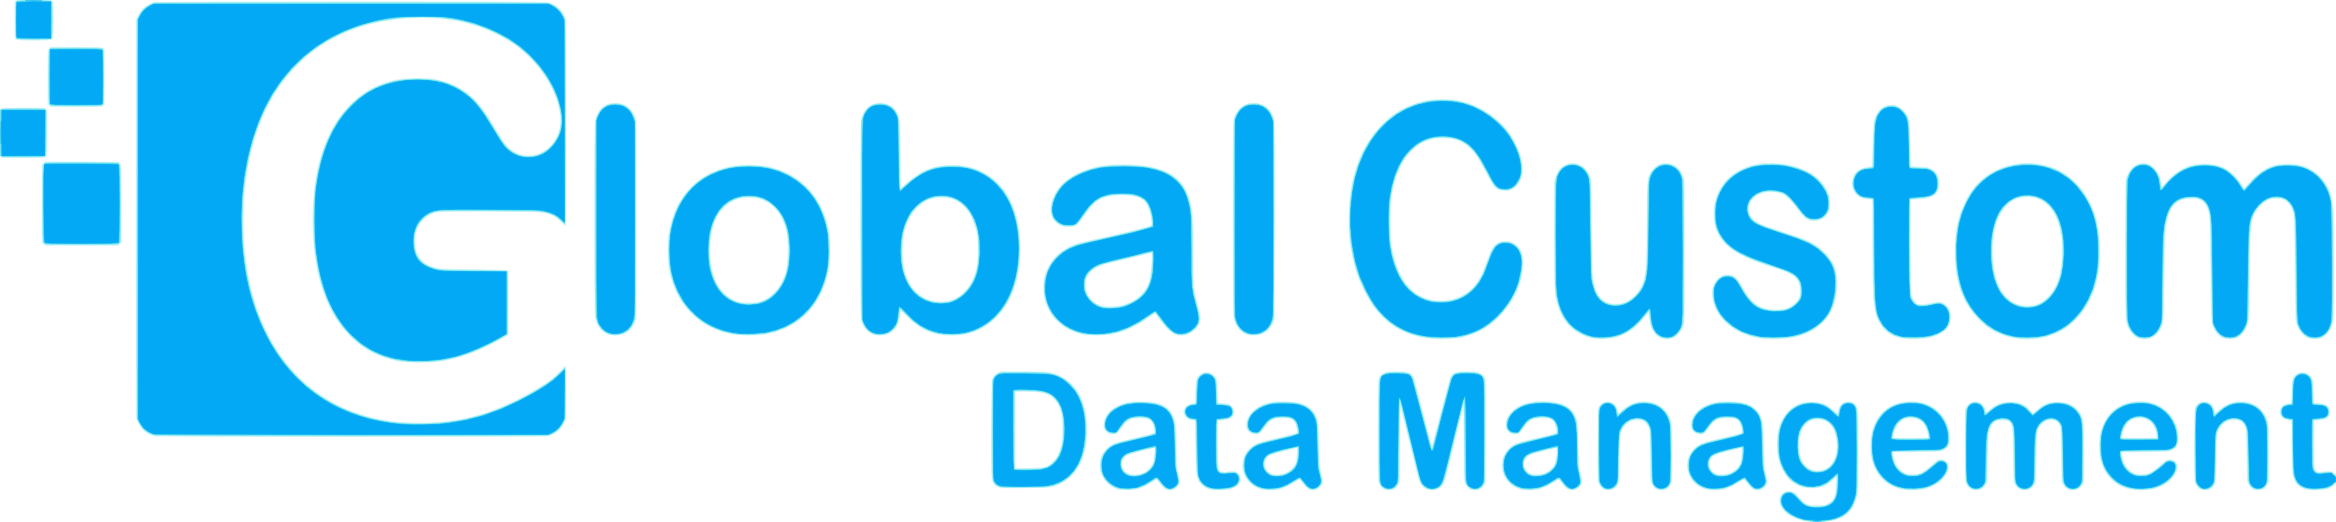 Global Custom Data Management